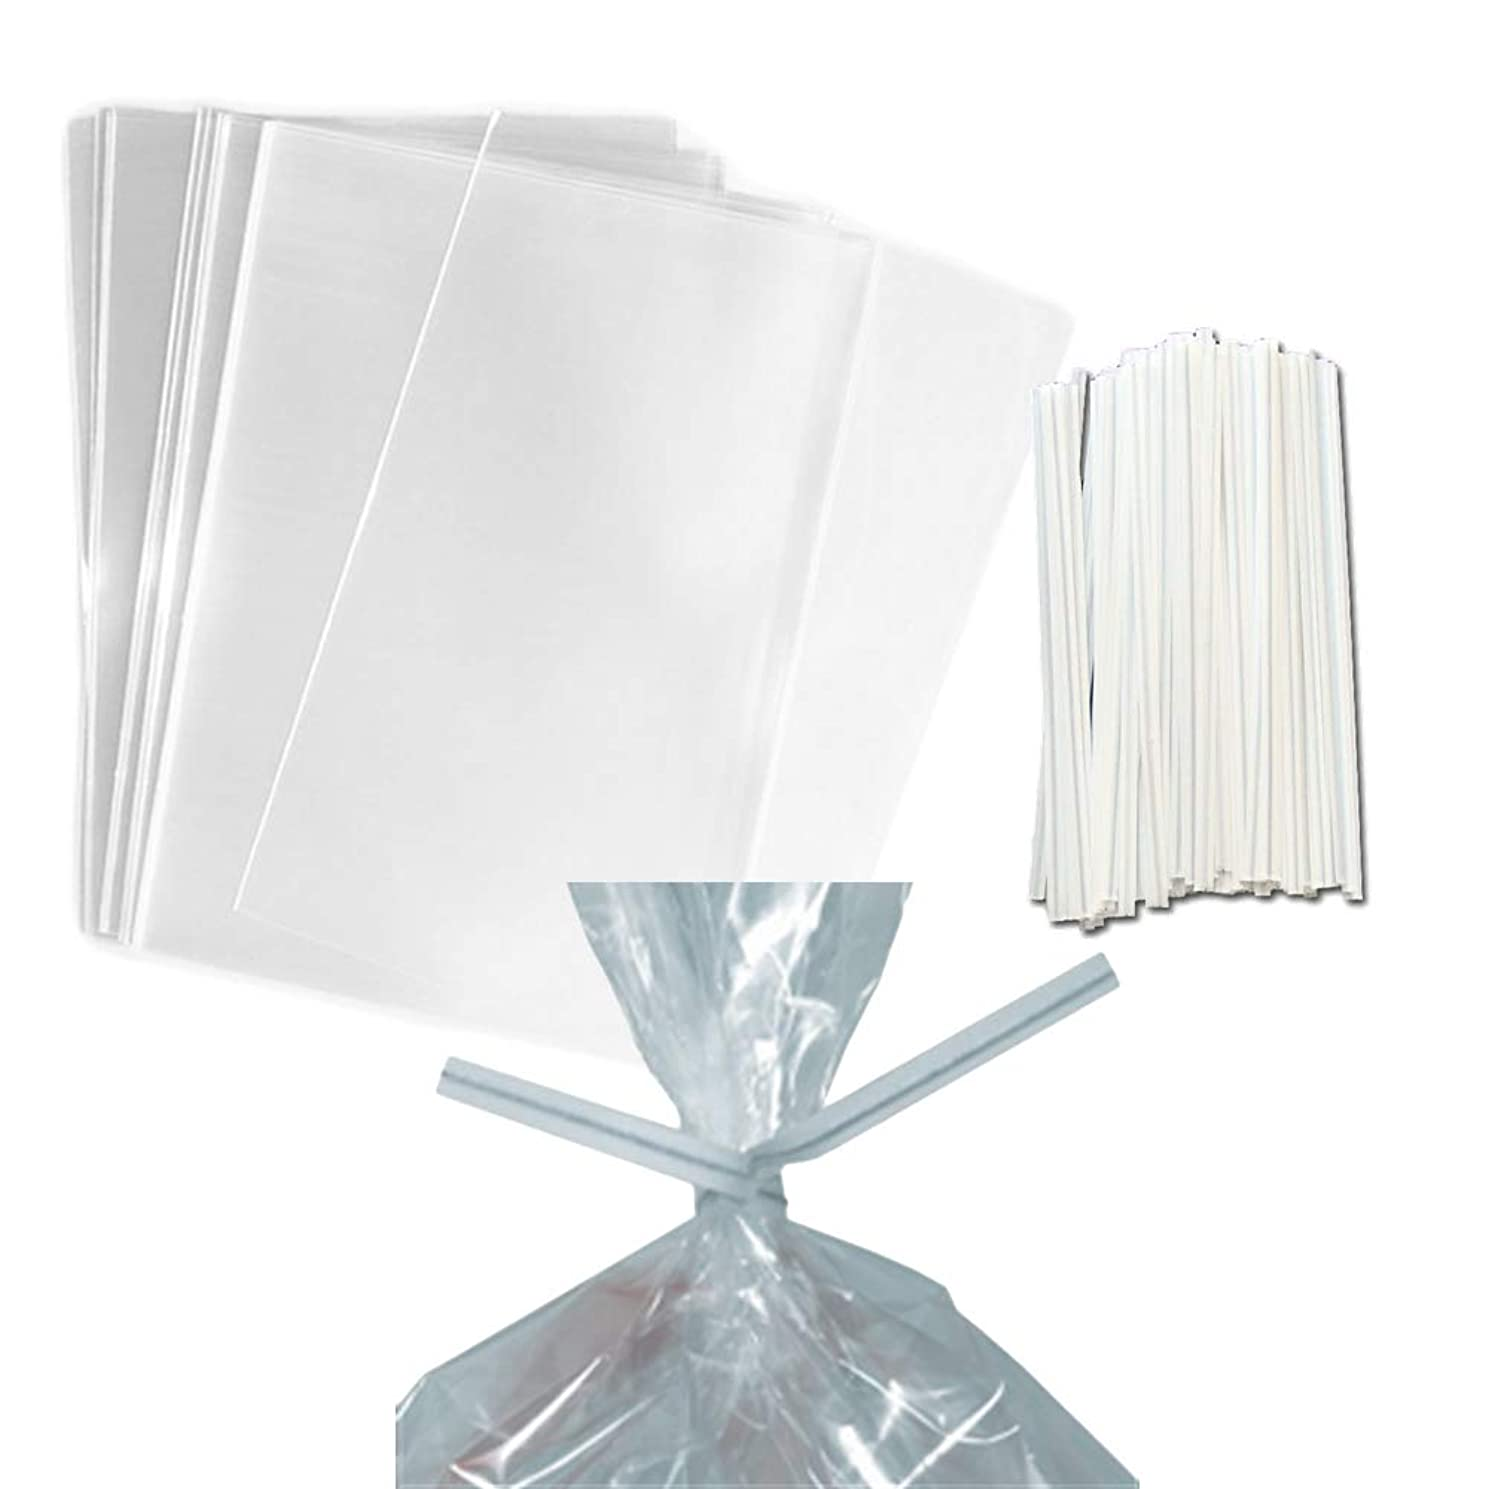 100 Clear Treat & Favor Bags   Ties Included   Great For Cake Pops, Candy, Gifts, Wedding or Party Favors   Food Safe Plastic   Stronger Than Cellophane   1.5 Mils Thickness   5.75